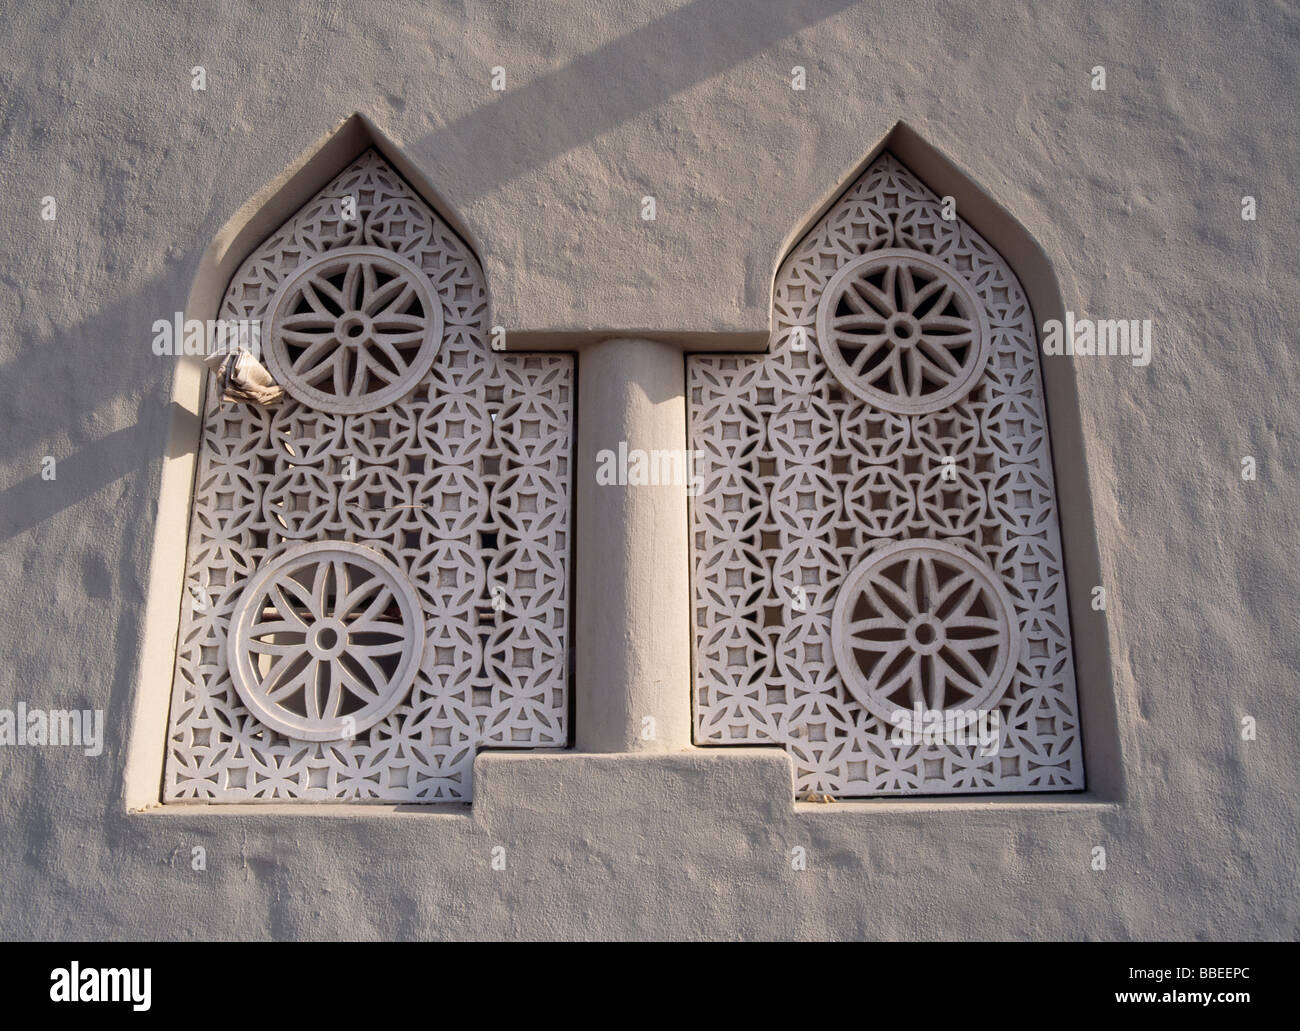 Qatar doha ornate carved fretwork detail of two windows on